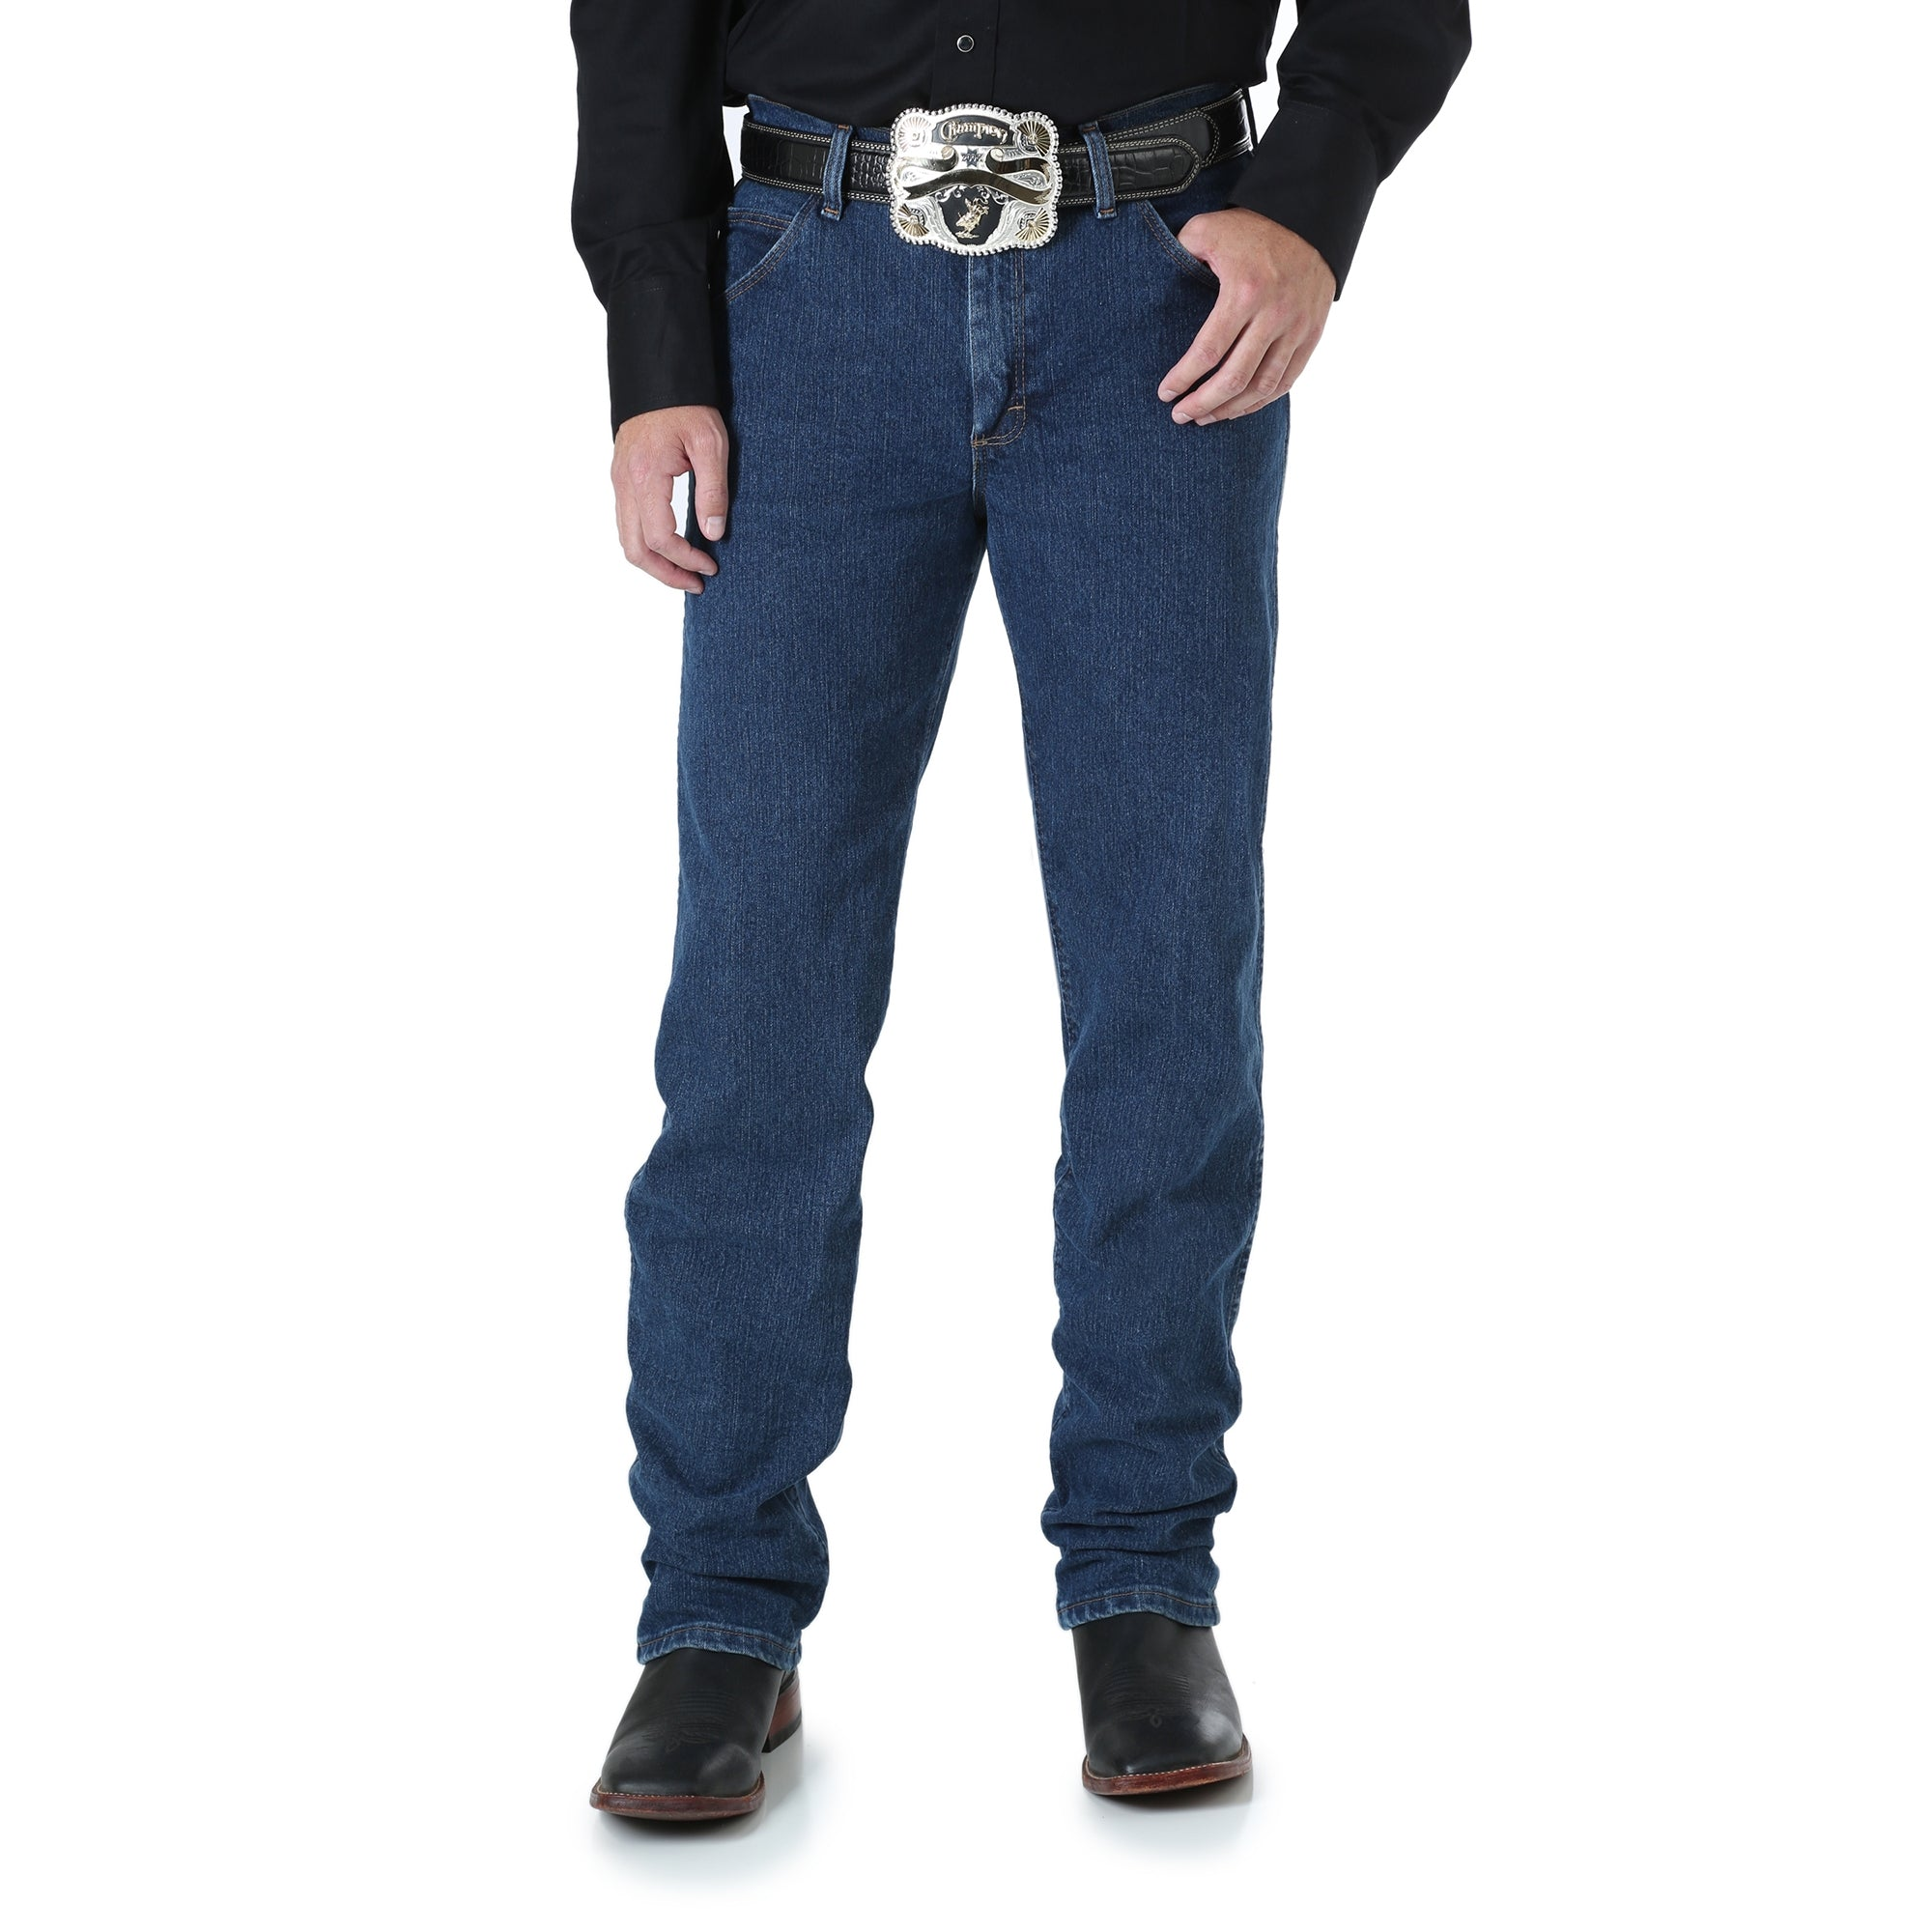 Wrangler Premium Performance Advanced Comfort Cowboy Cut Regular Fit Jean